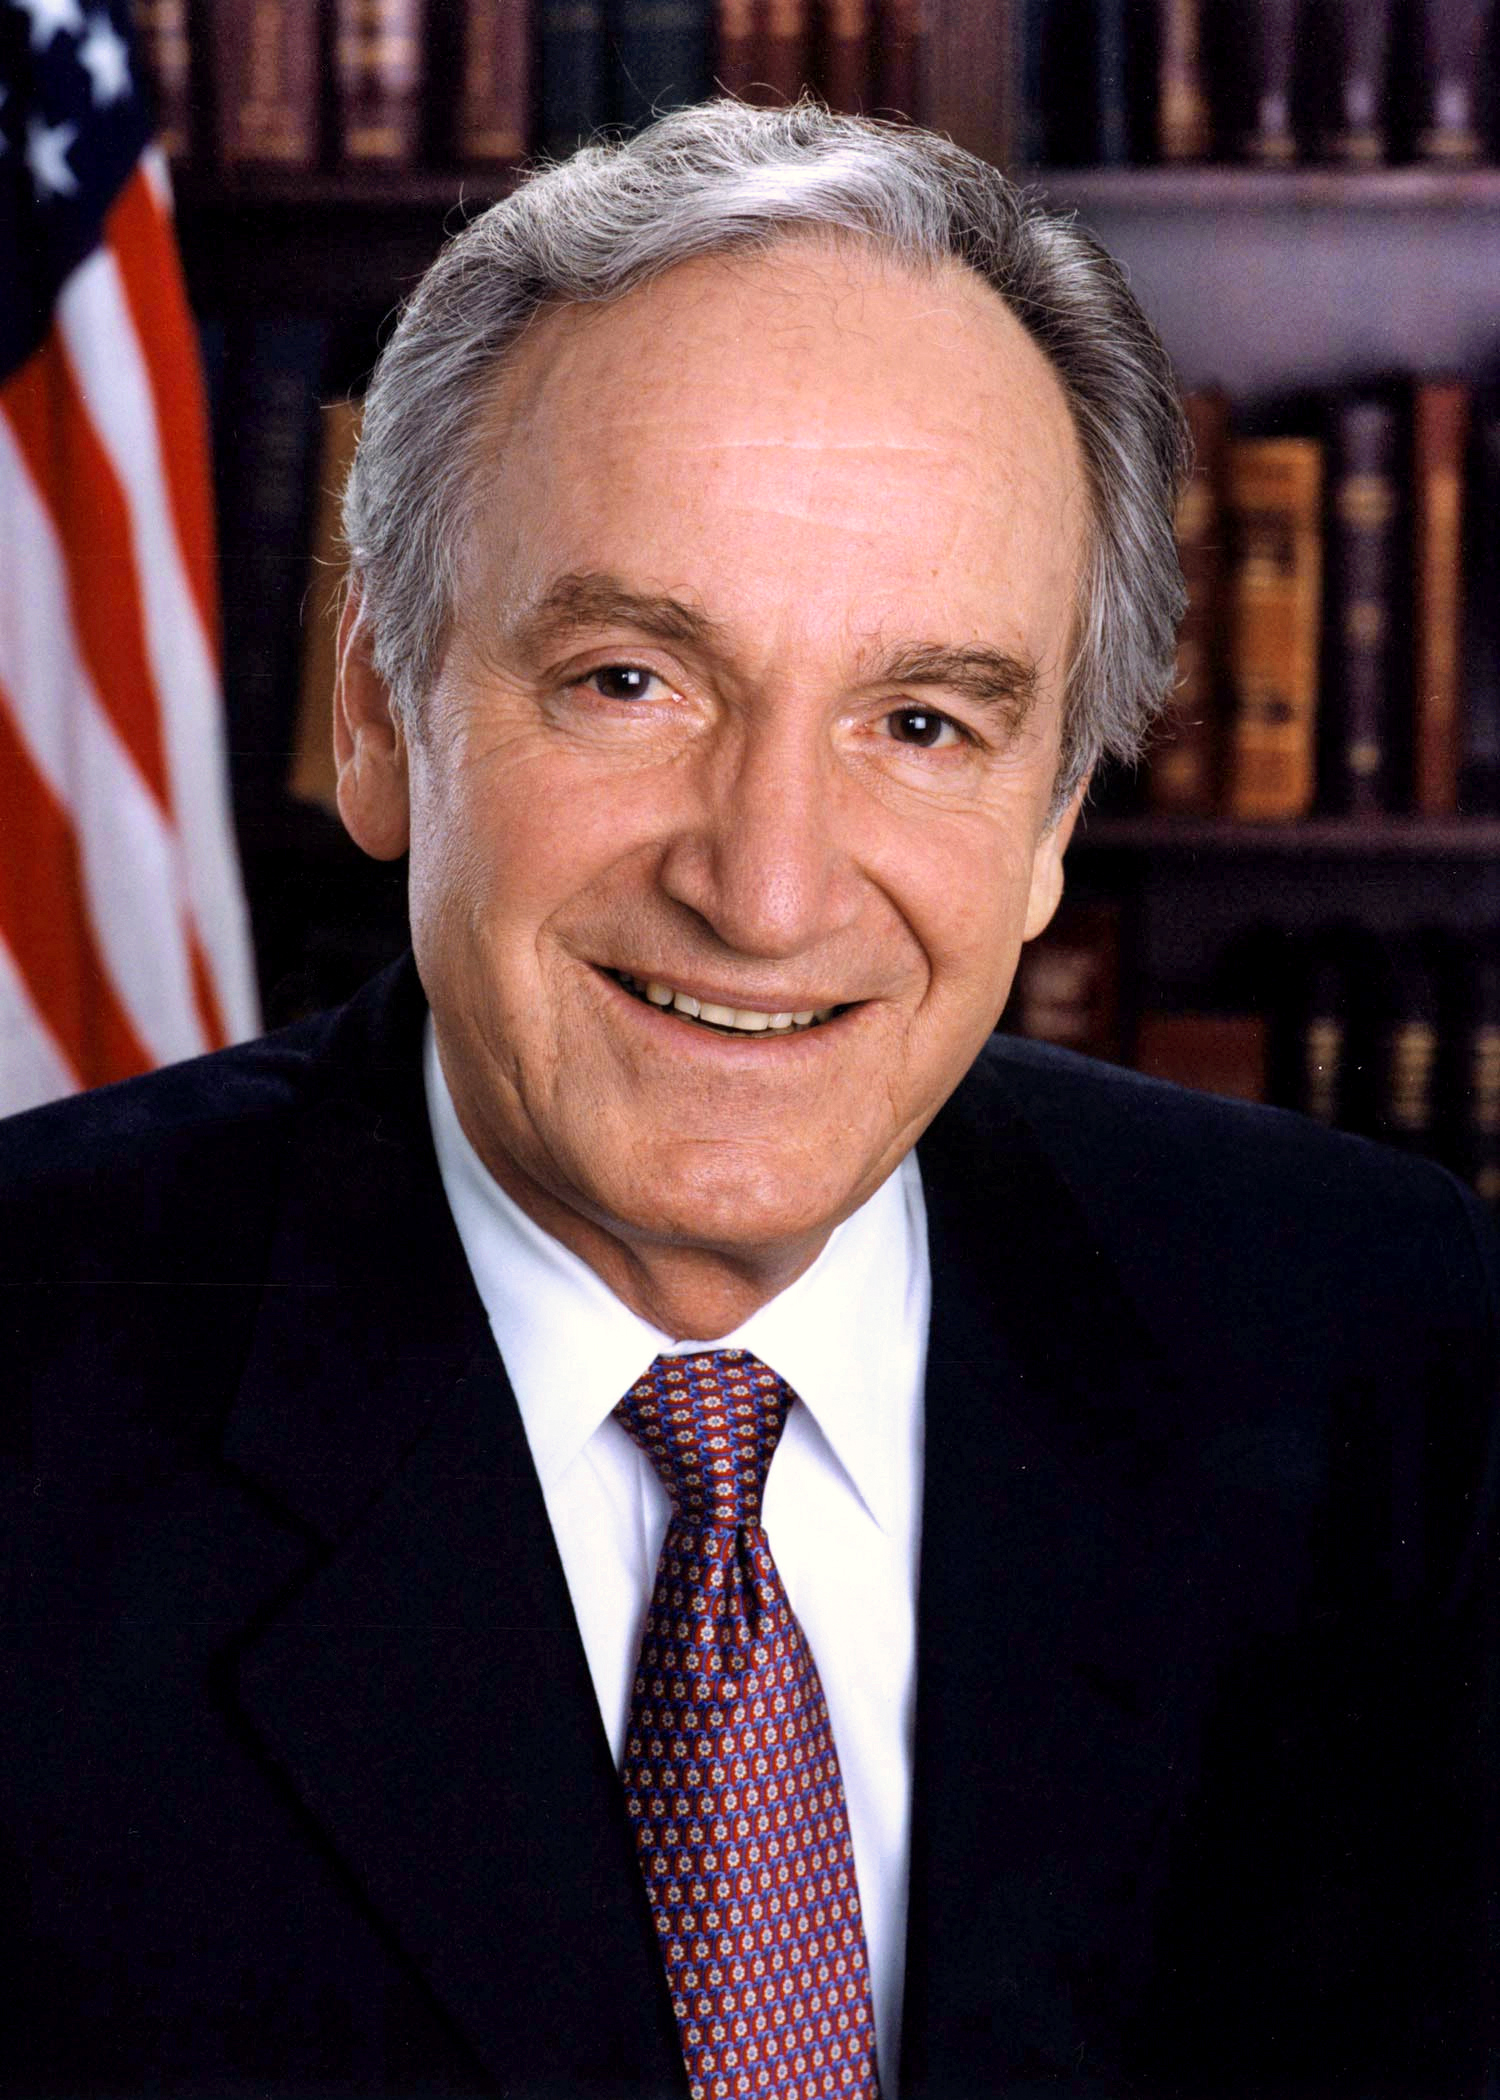 Senator Tom Harkin (D-IA) (Picture from Wikipedia Commons)